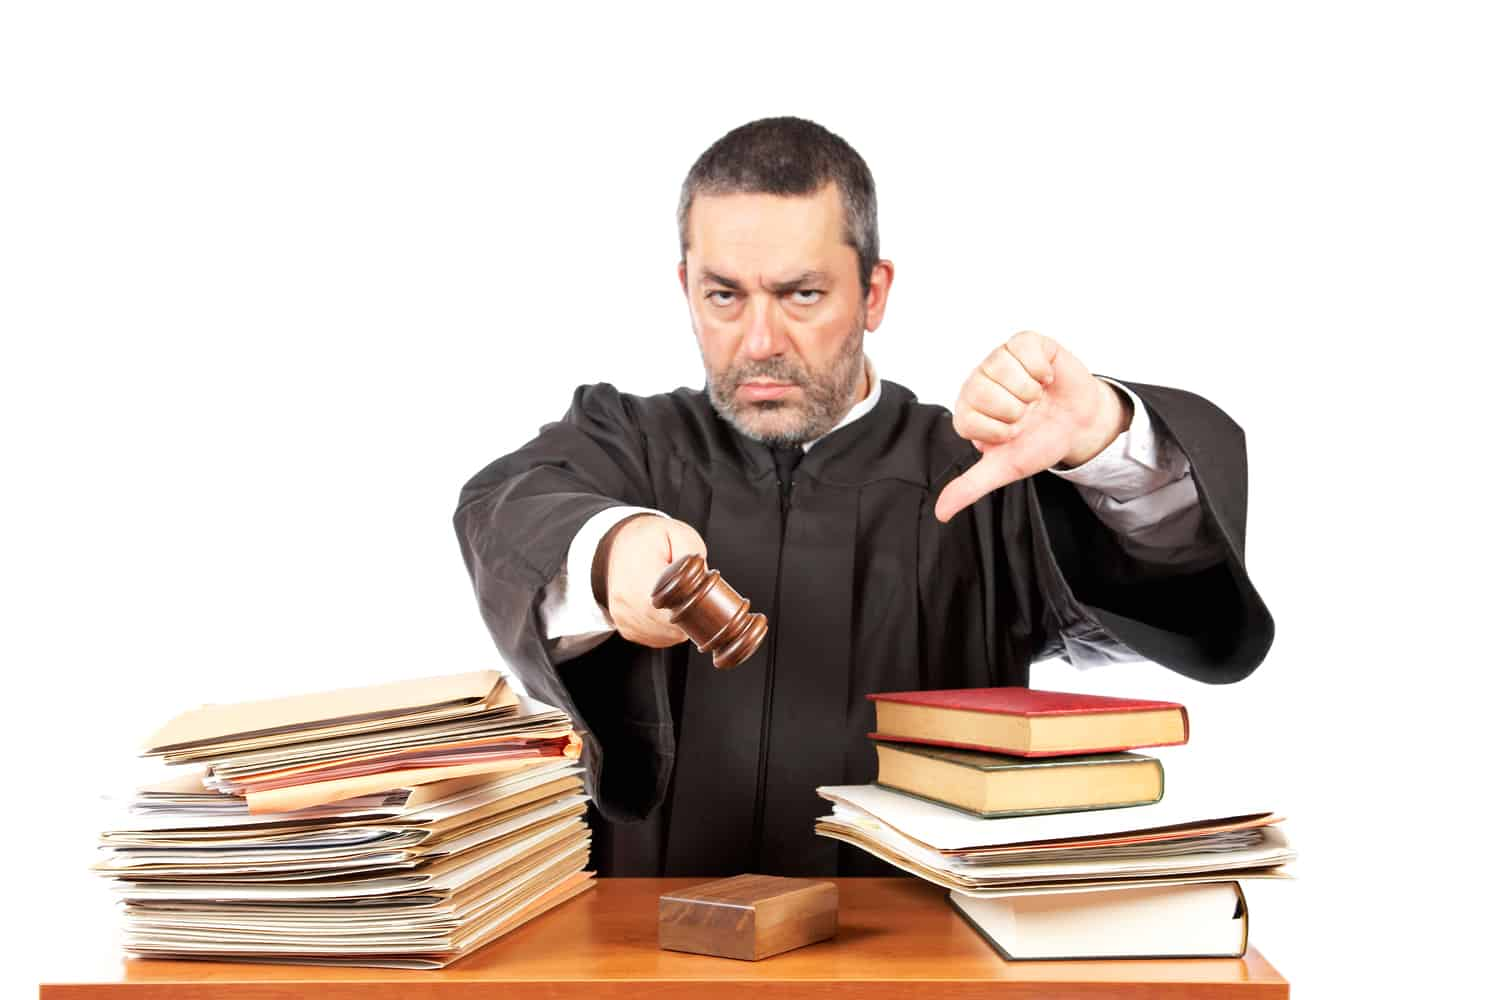 Judge with stack of books giving thumbs down